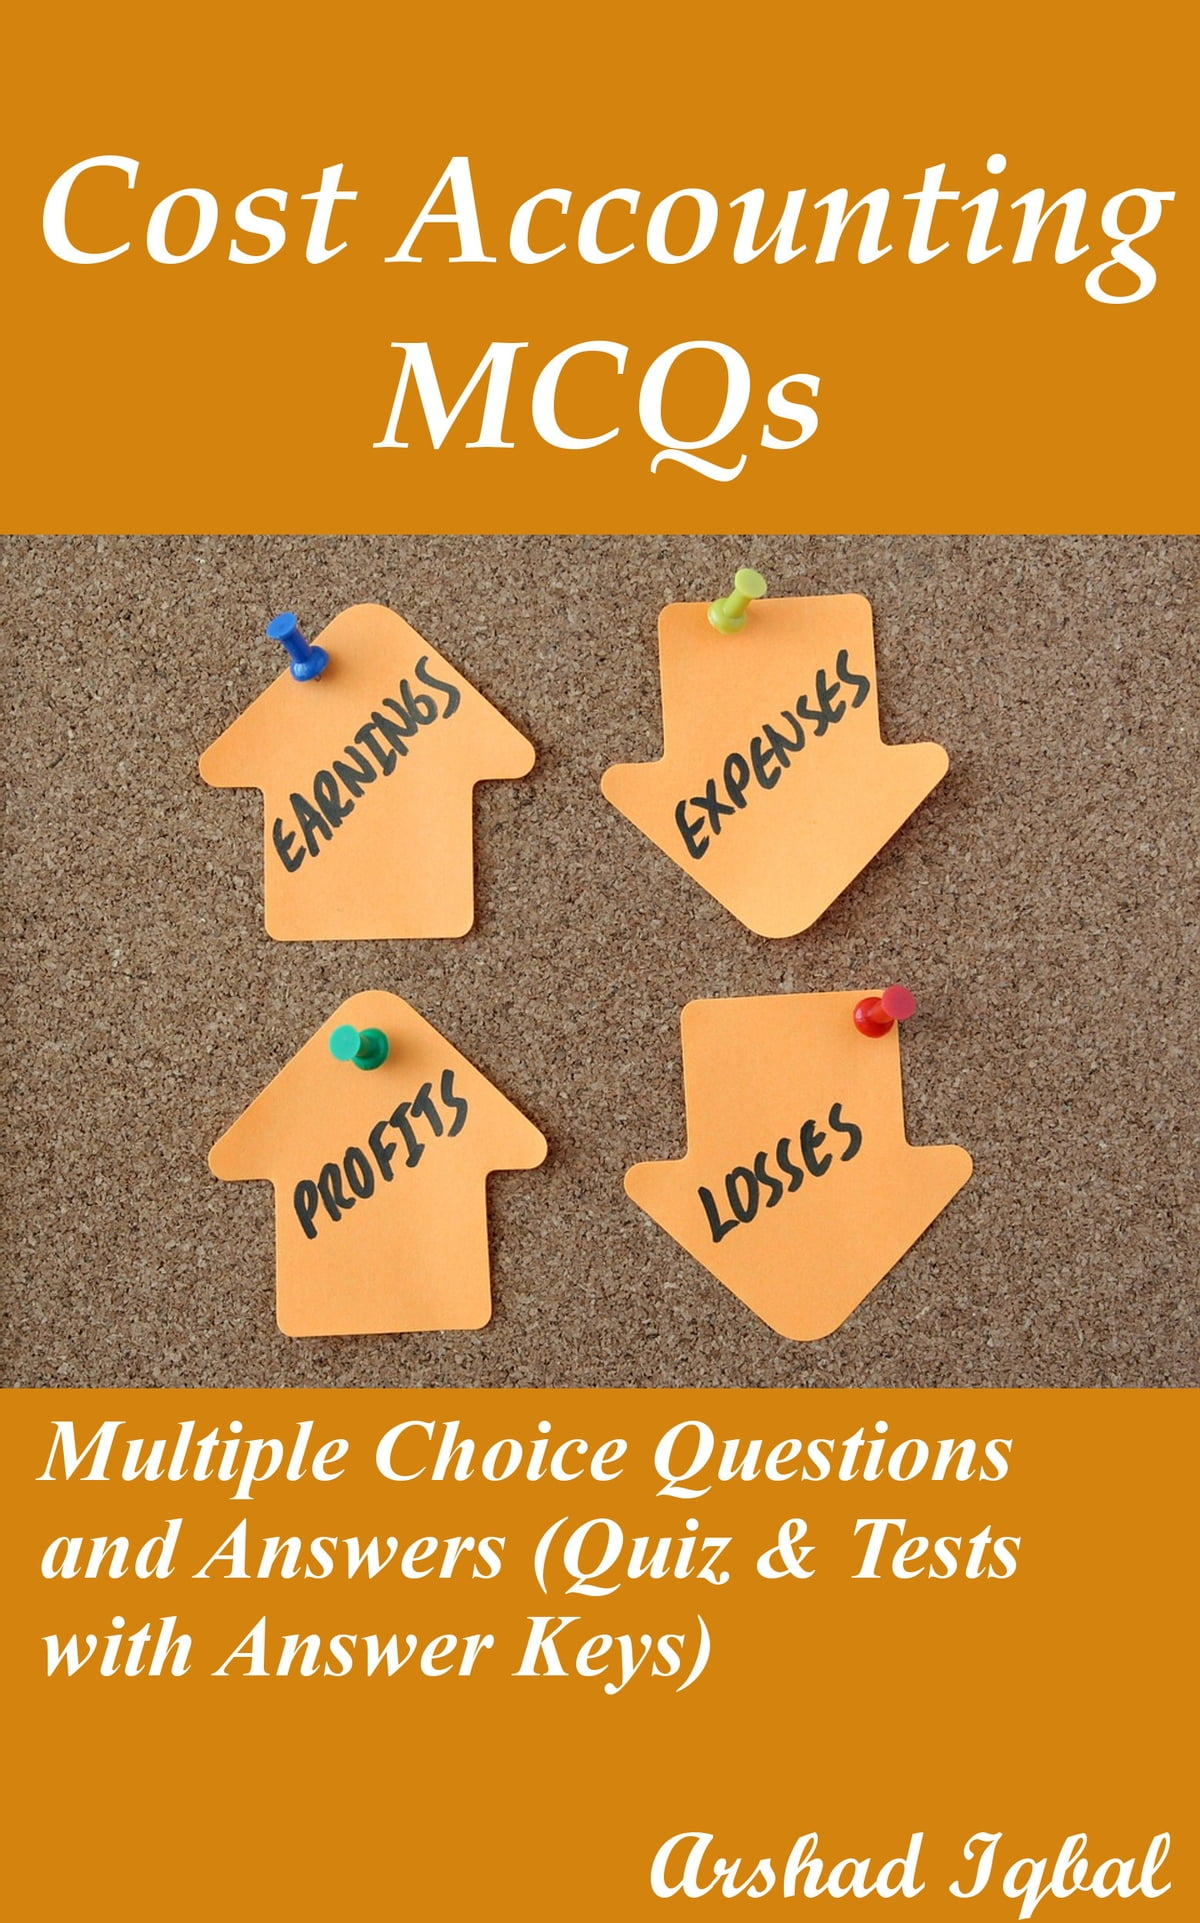 Cost Accounting MCQs: Multiple Choice Questions and Answers (Quiz & Tests  with Answer Keys) ebook by Arshad Iqbal - Rakuten Kobo